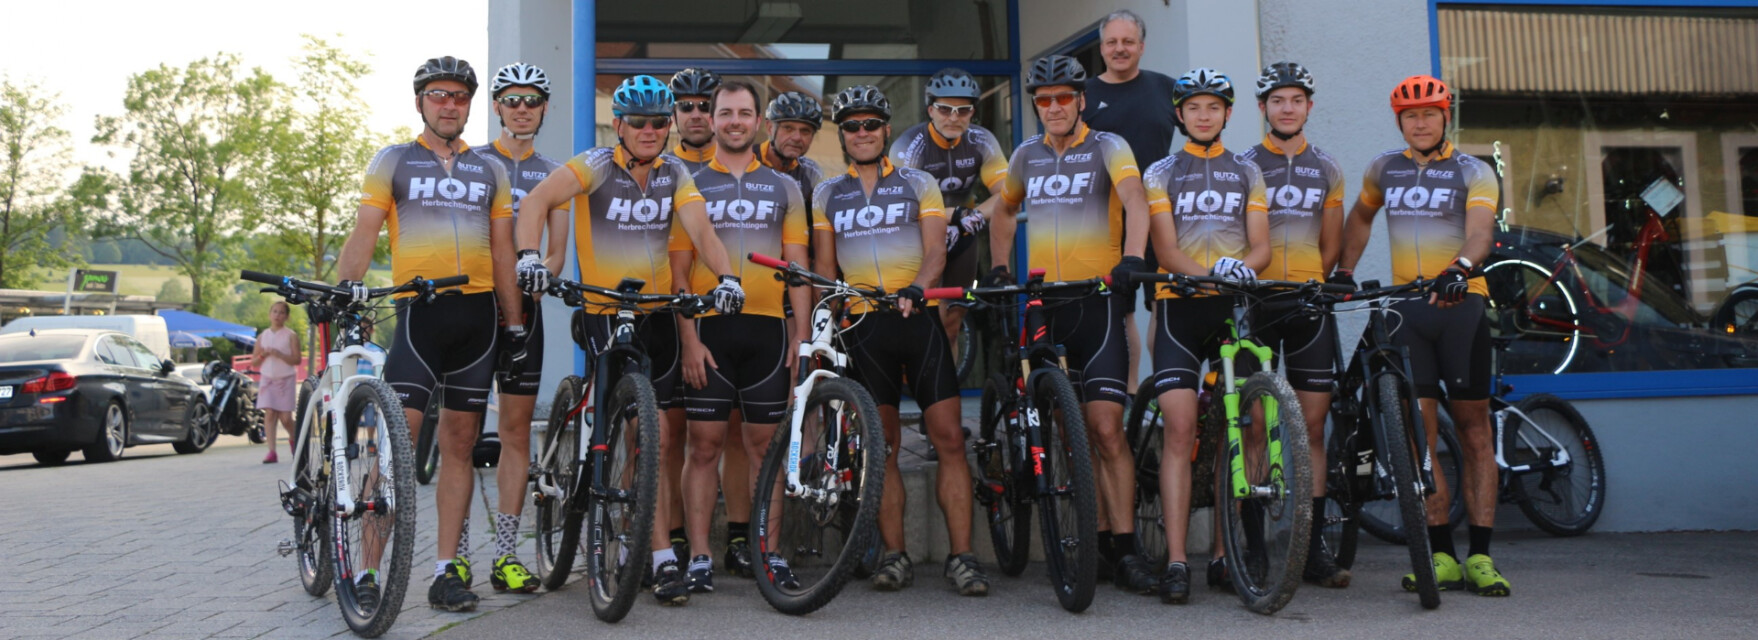 Hof Racing Team